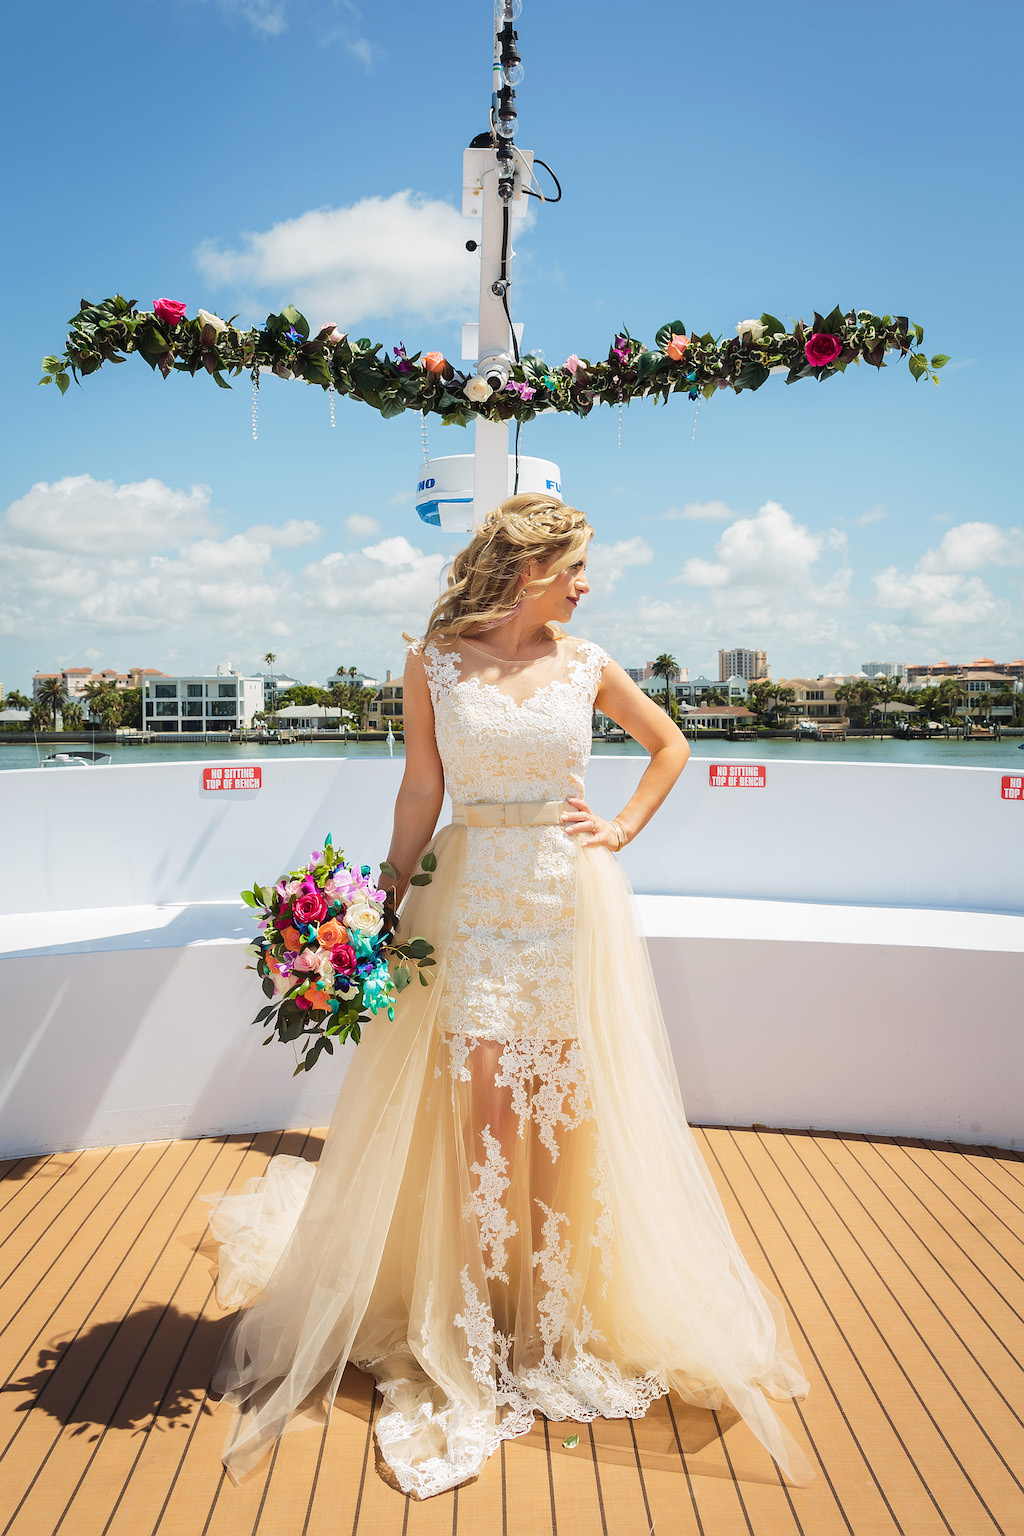 Florida Bride Wedding Portrait on Deck of Yacht, Bride in Lace and Illusion with Tulle Train High Scoop Neckline with Satin Champagne Bow Belt with Colorful Floral Bridal Bouquet | Florida Bride and Groom Wedding Portrait on Deck of Yacht, Bride in Lace and Illusion with Tulle Train High Scoop Neckline Wedding Dress with Colorful Floral Bridal Bouquet, Groom in Navy Blue Tuxedo | Unique Waterfront Tampa Wedding Venue The Yacht Starship IV | Tampa Bay Hair and Makeup Femme Akoi